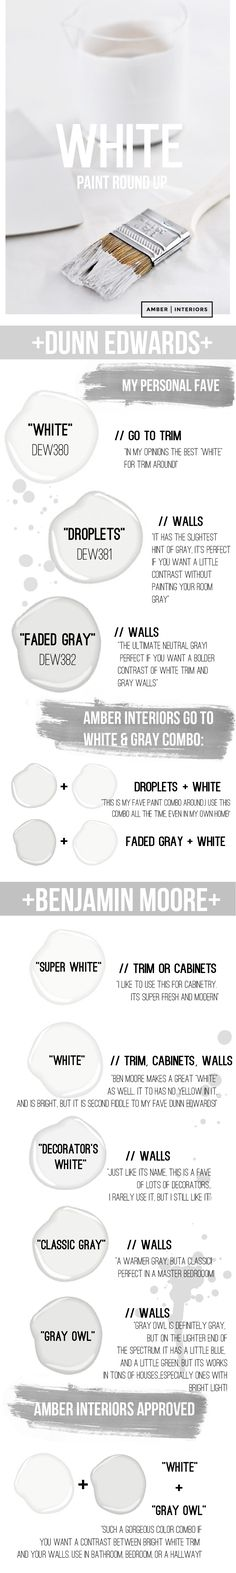 FYI: White Paint - A